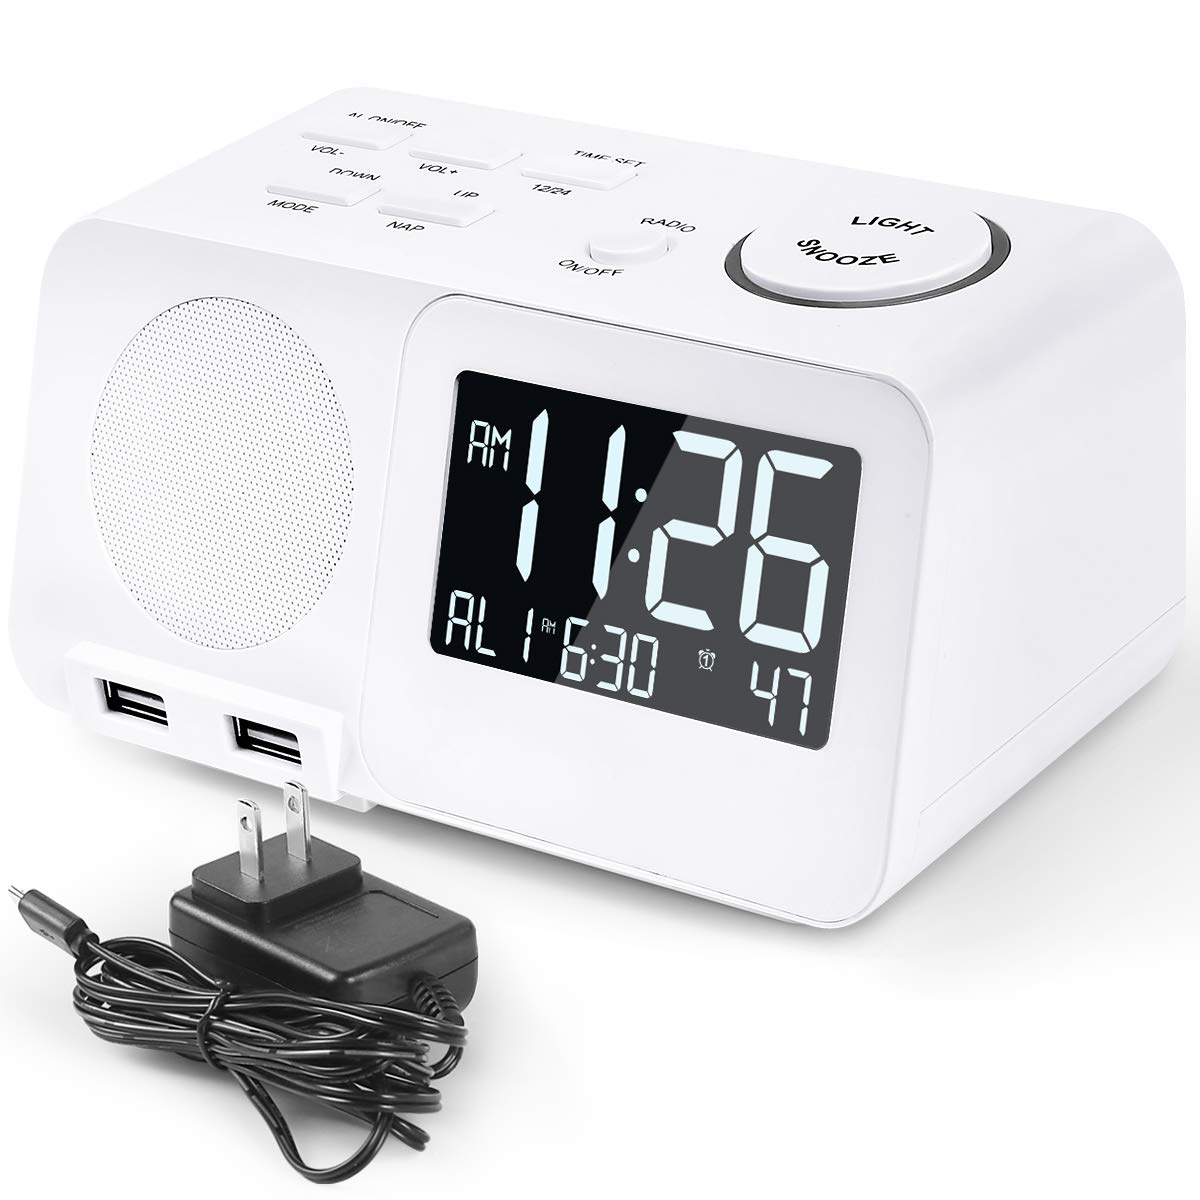 Alarm Clock Radio FM Digital Led Display Radio with USB Port Dimmer Snooze Sleep Timer Dual Alarms for Bedroom (with UL 60950-1 Adapter)